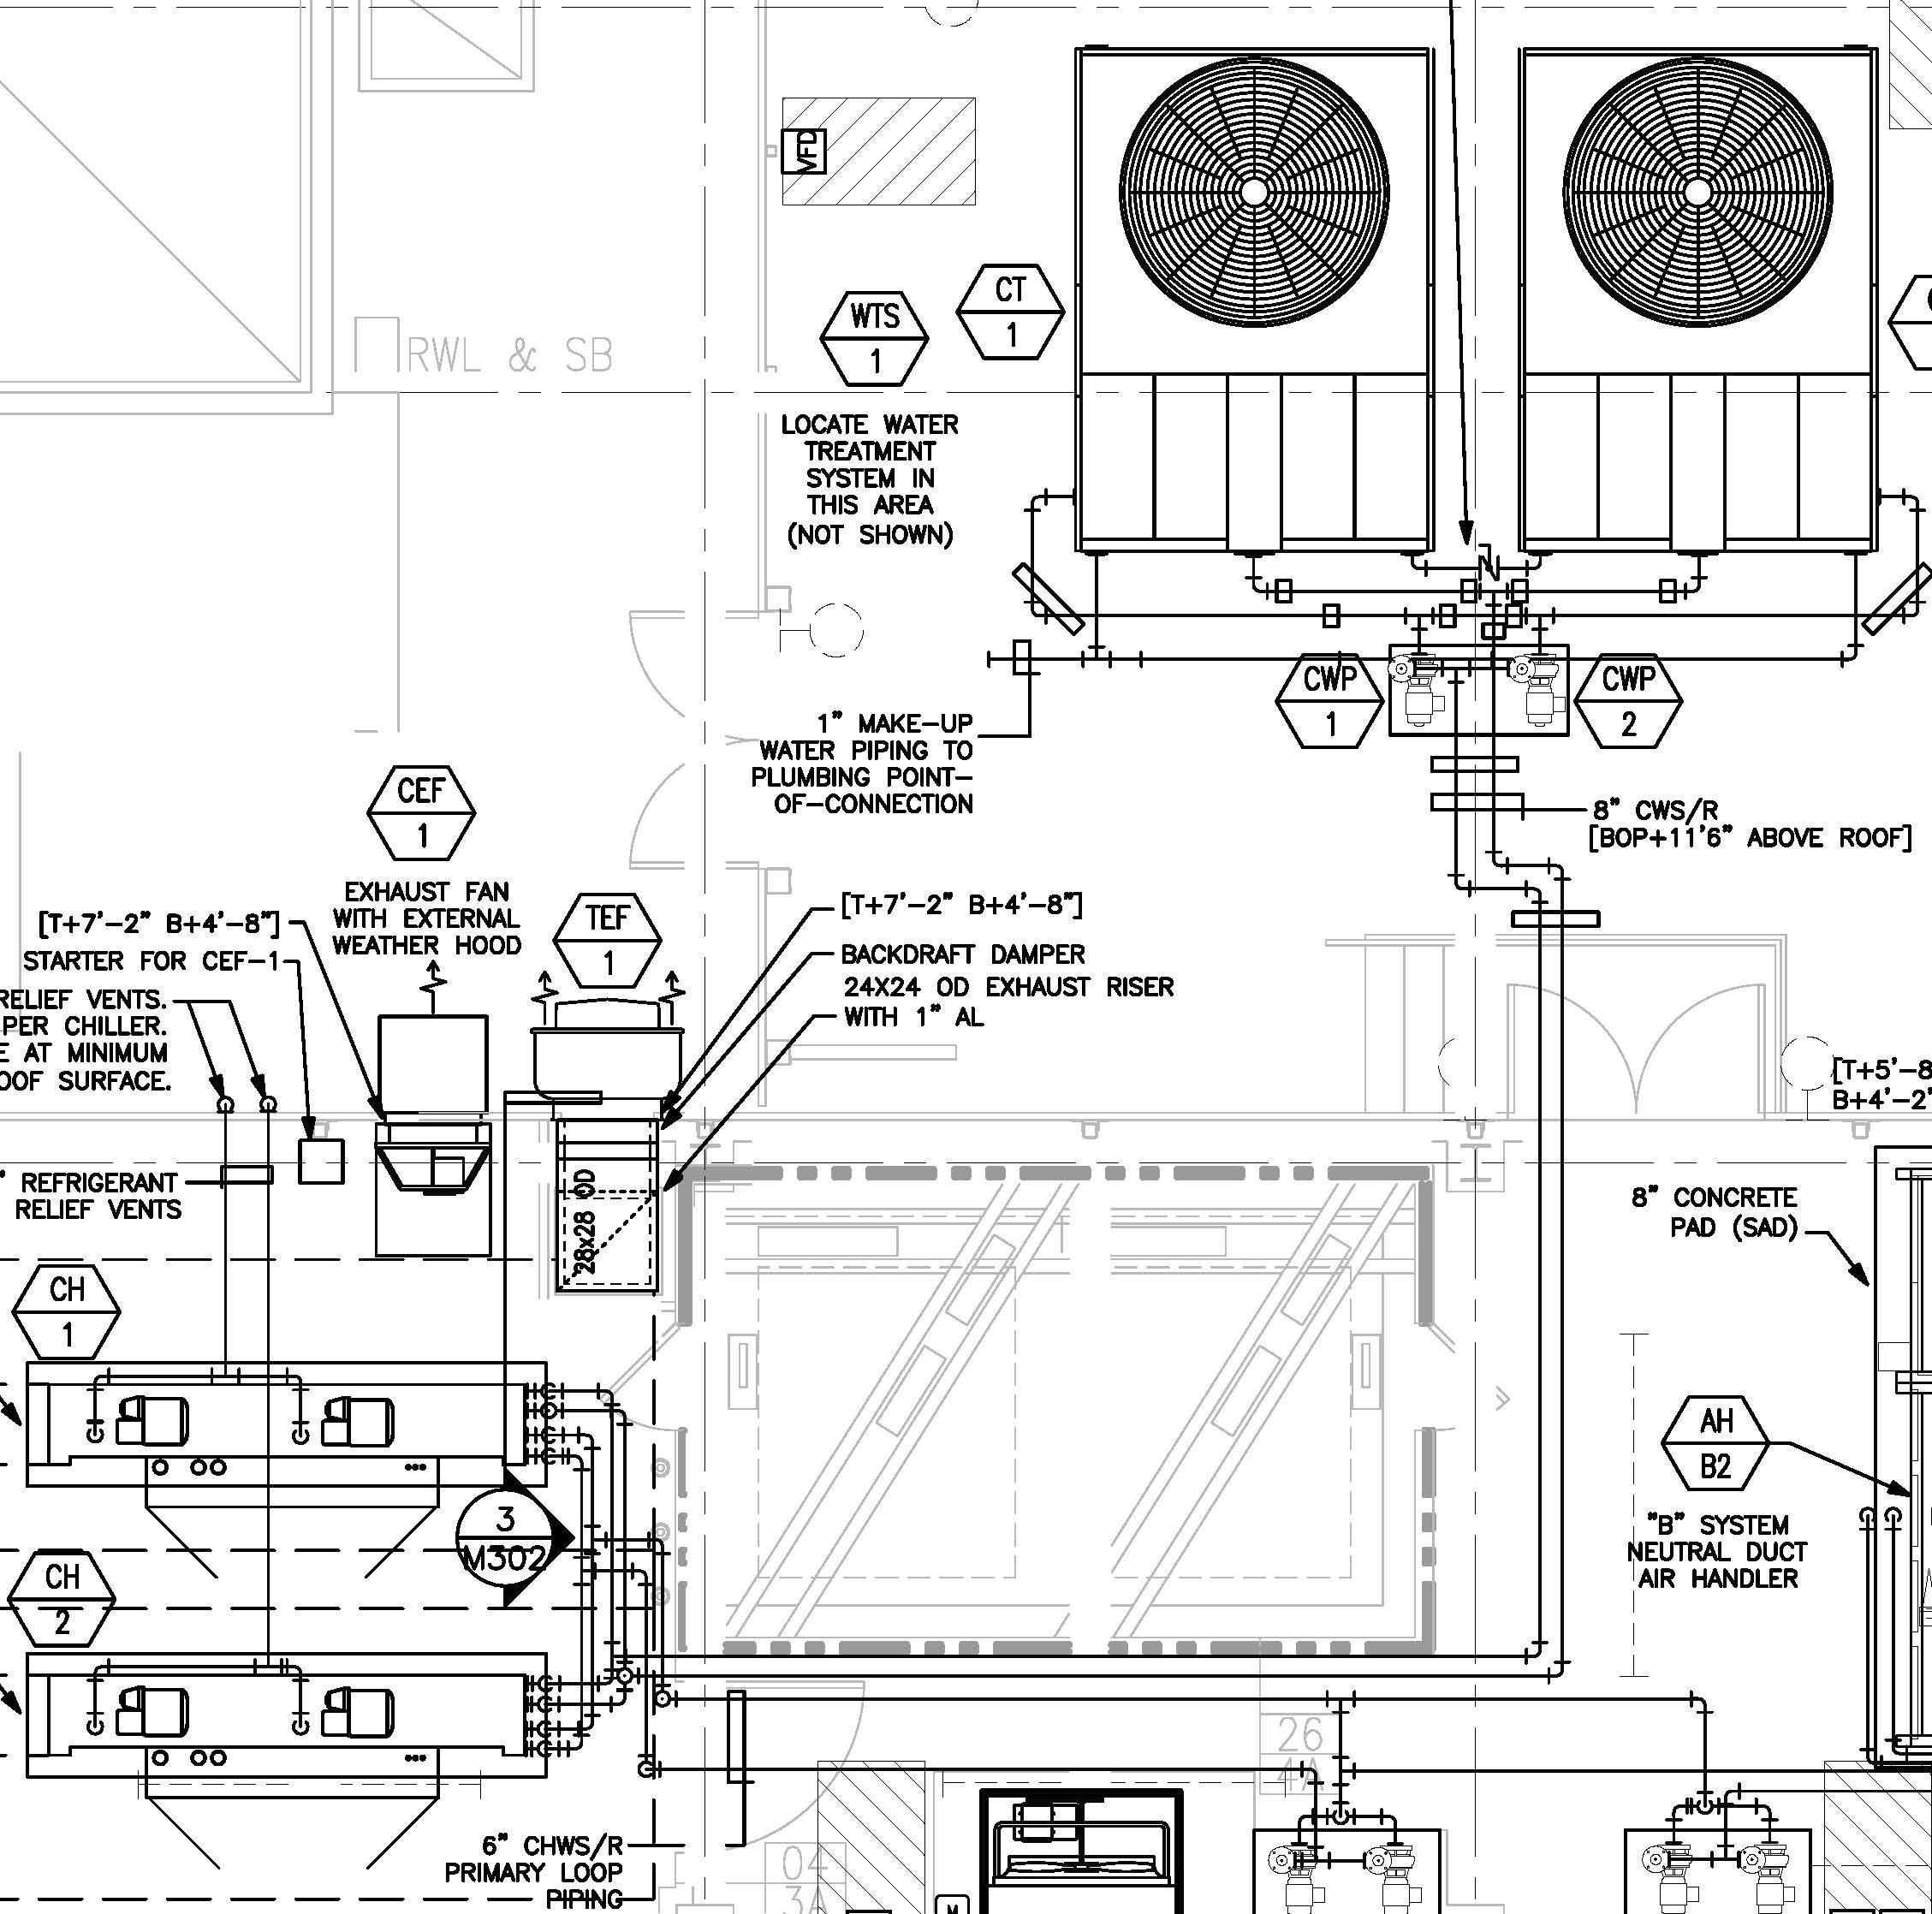 Trane Air Handler Wiring Diagram Trane Hvac Wiring Diagram New Trane Air Handler Wiring Diagram Rate